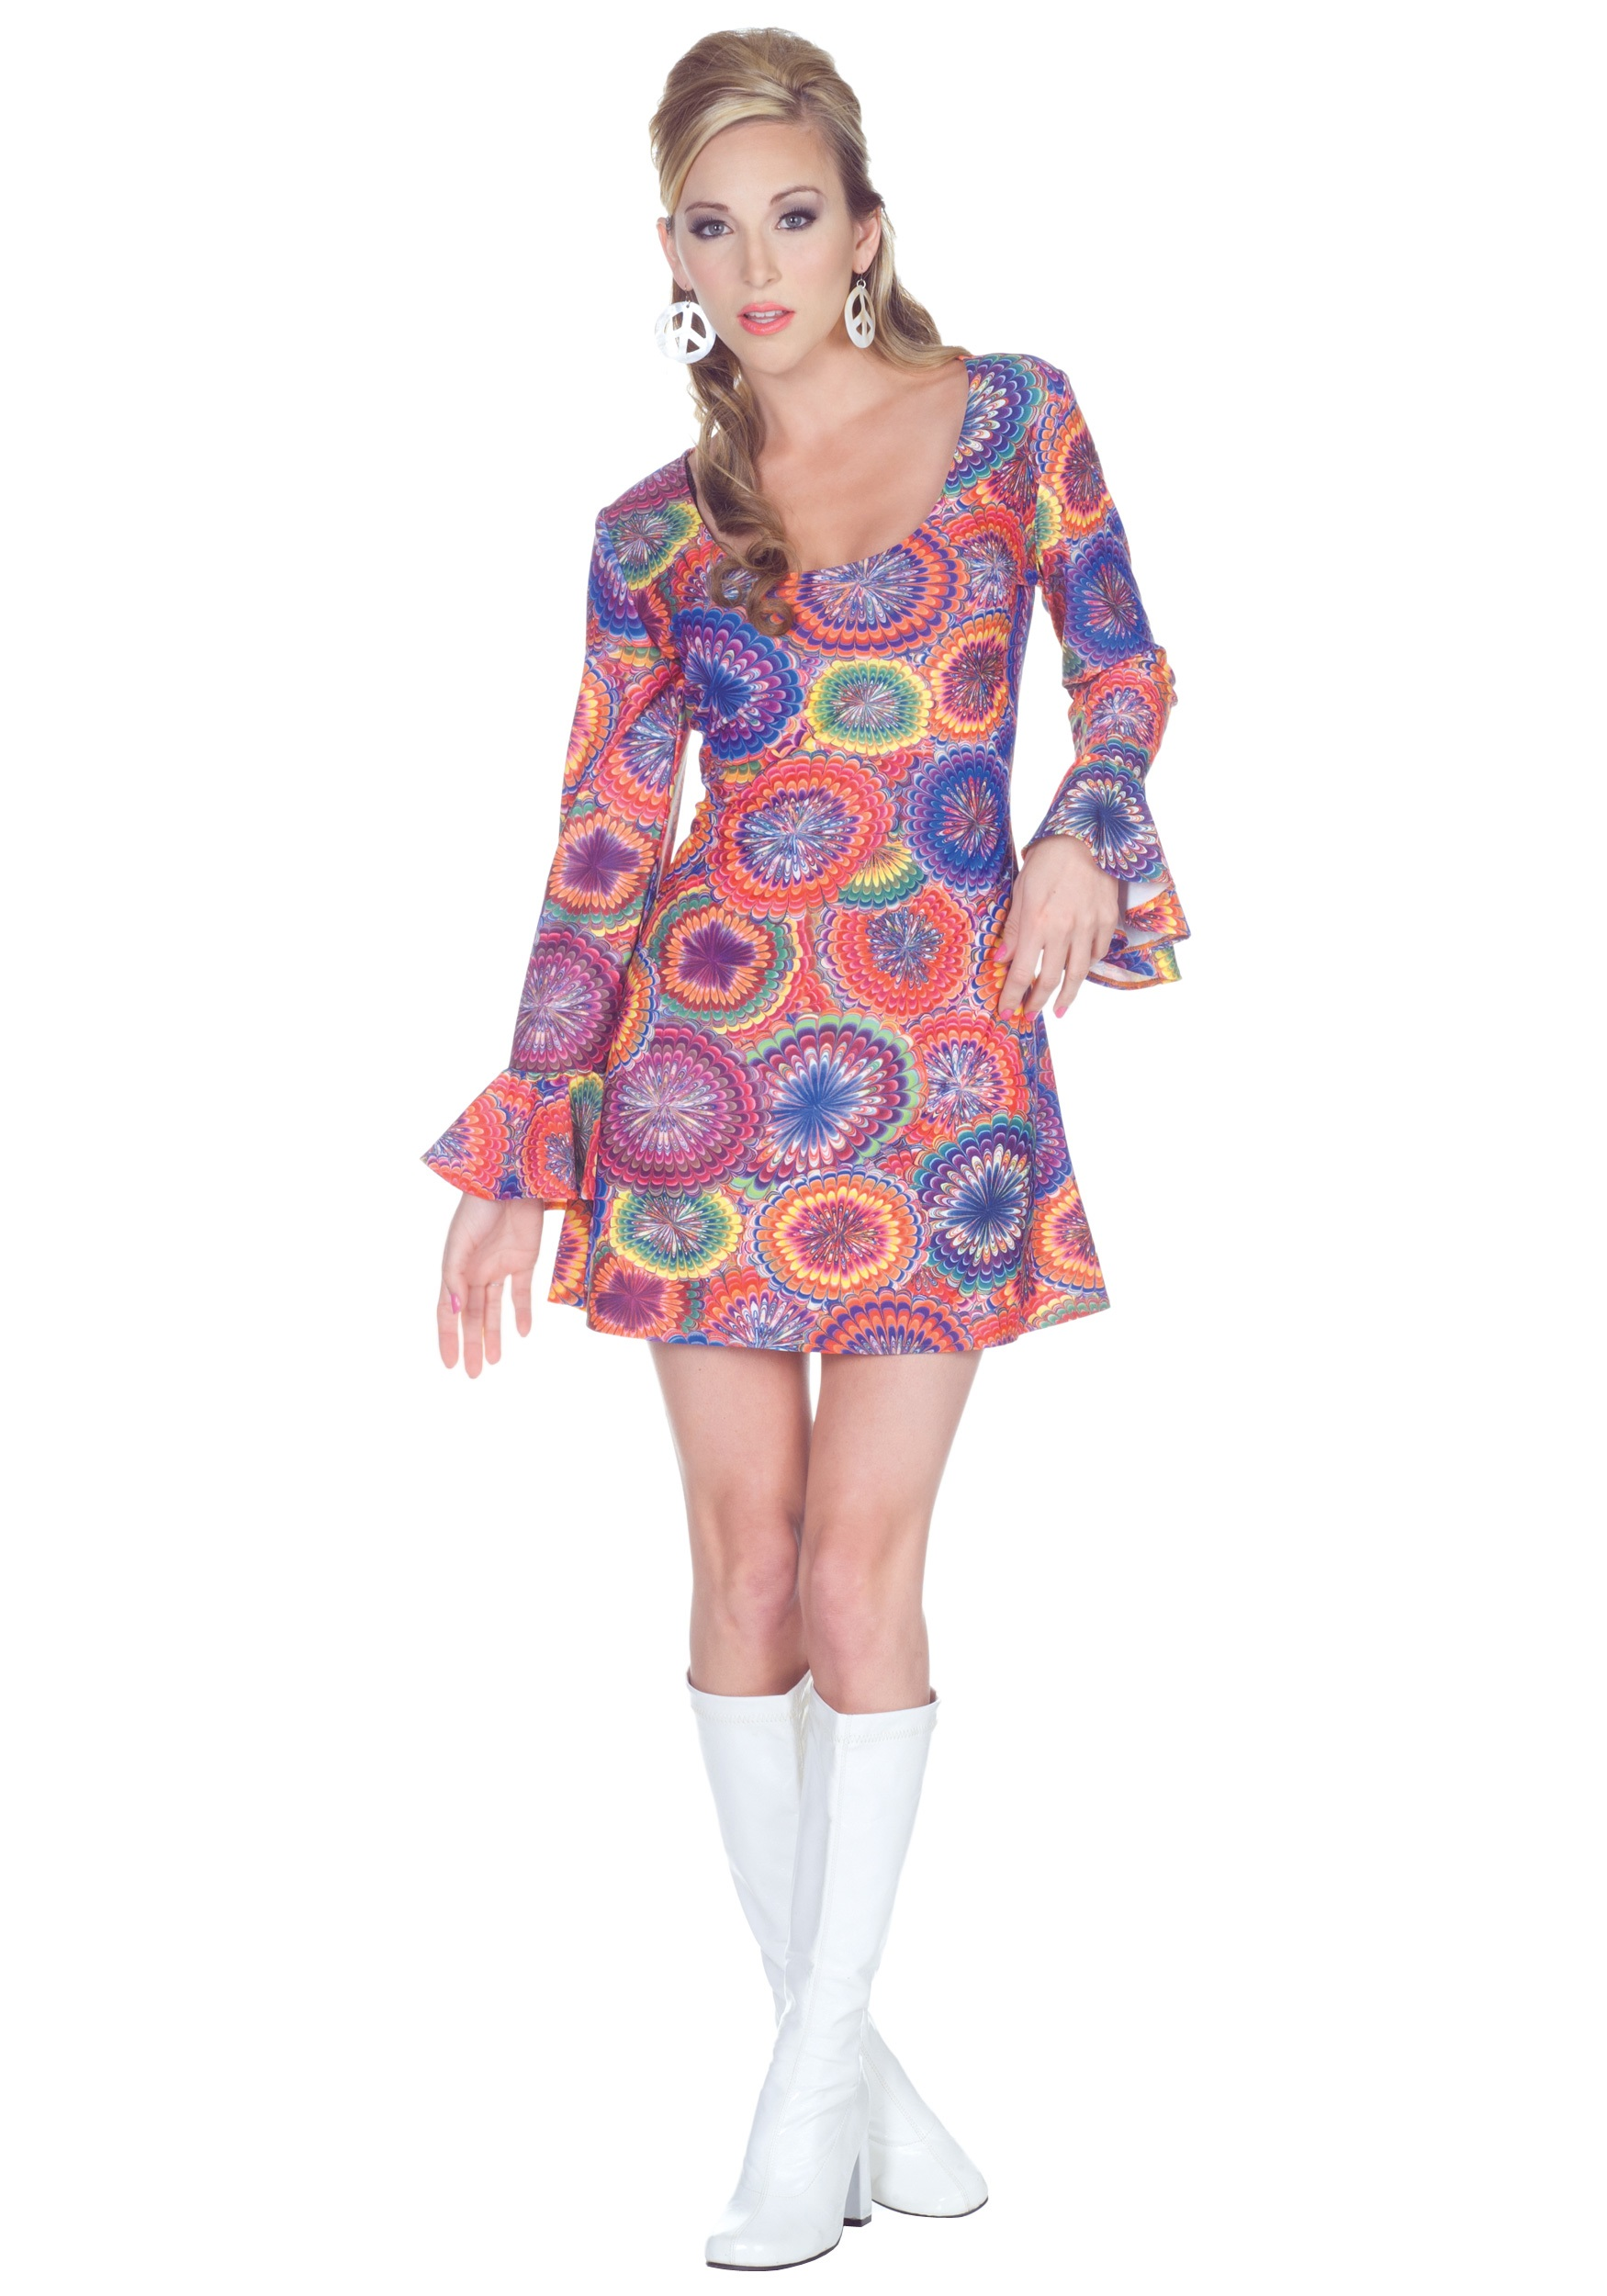 70s Sexy Psychedelic Dress - Halloween Costumes